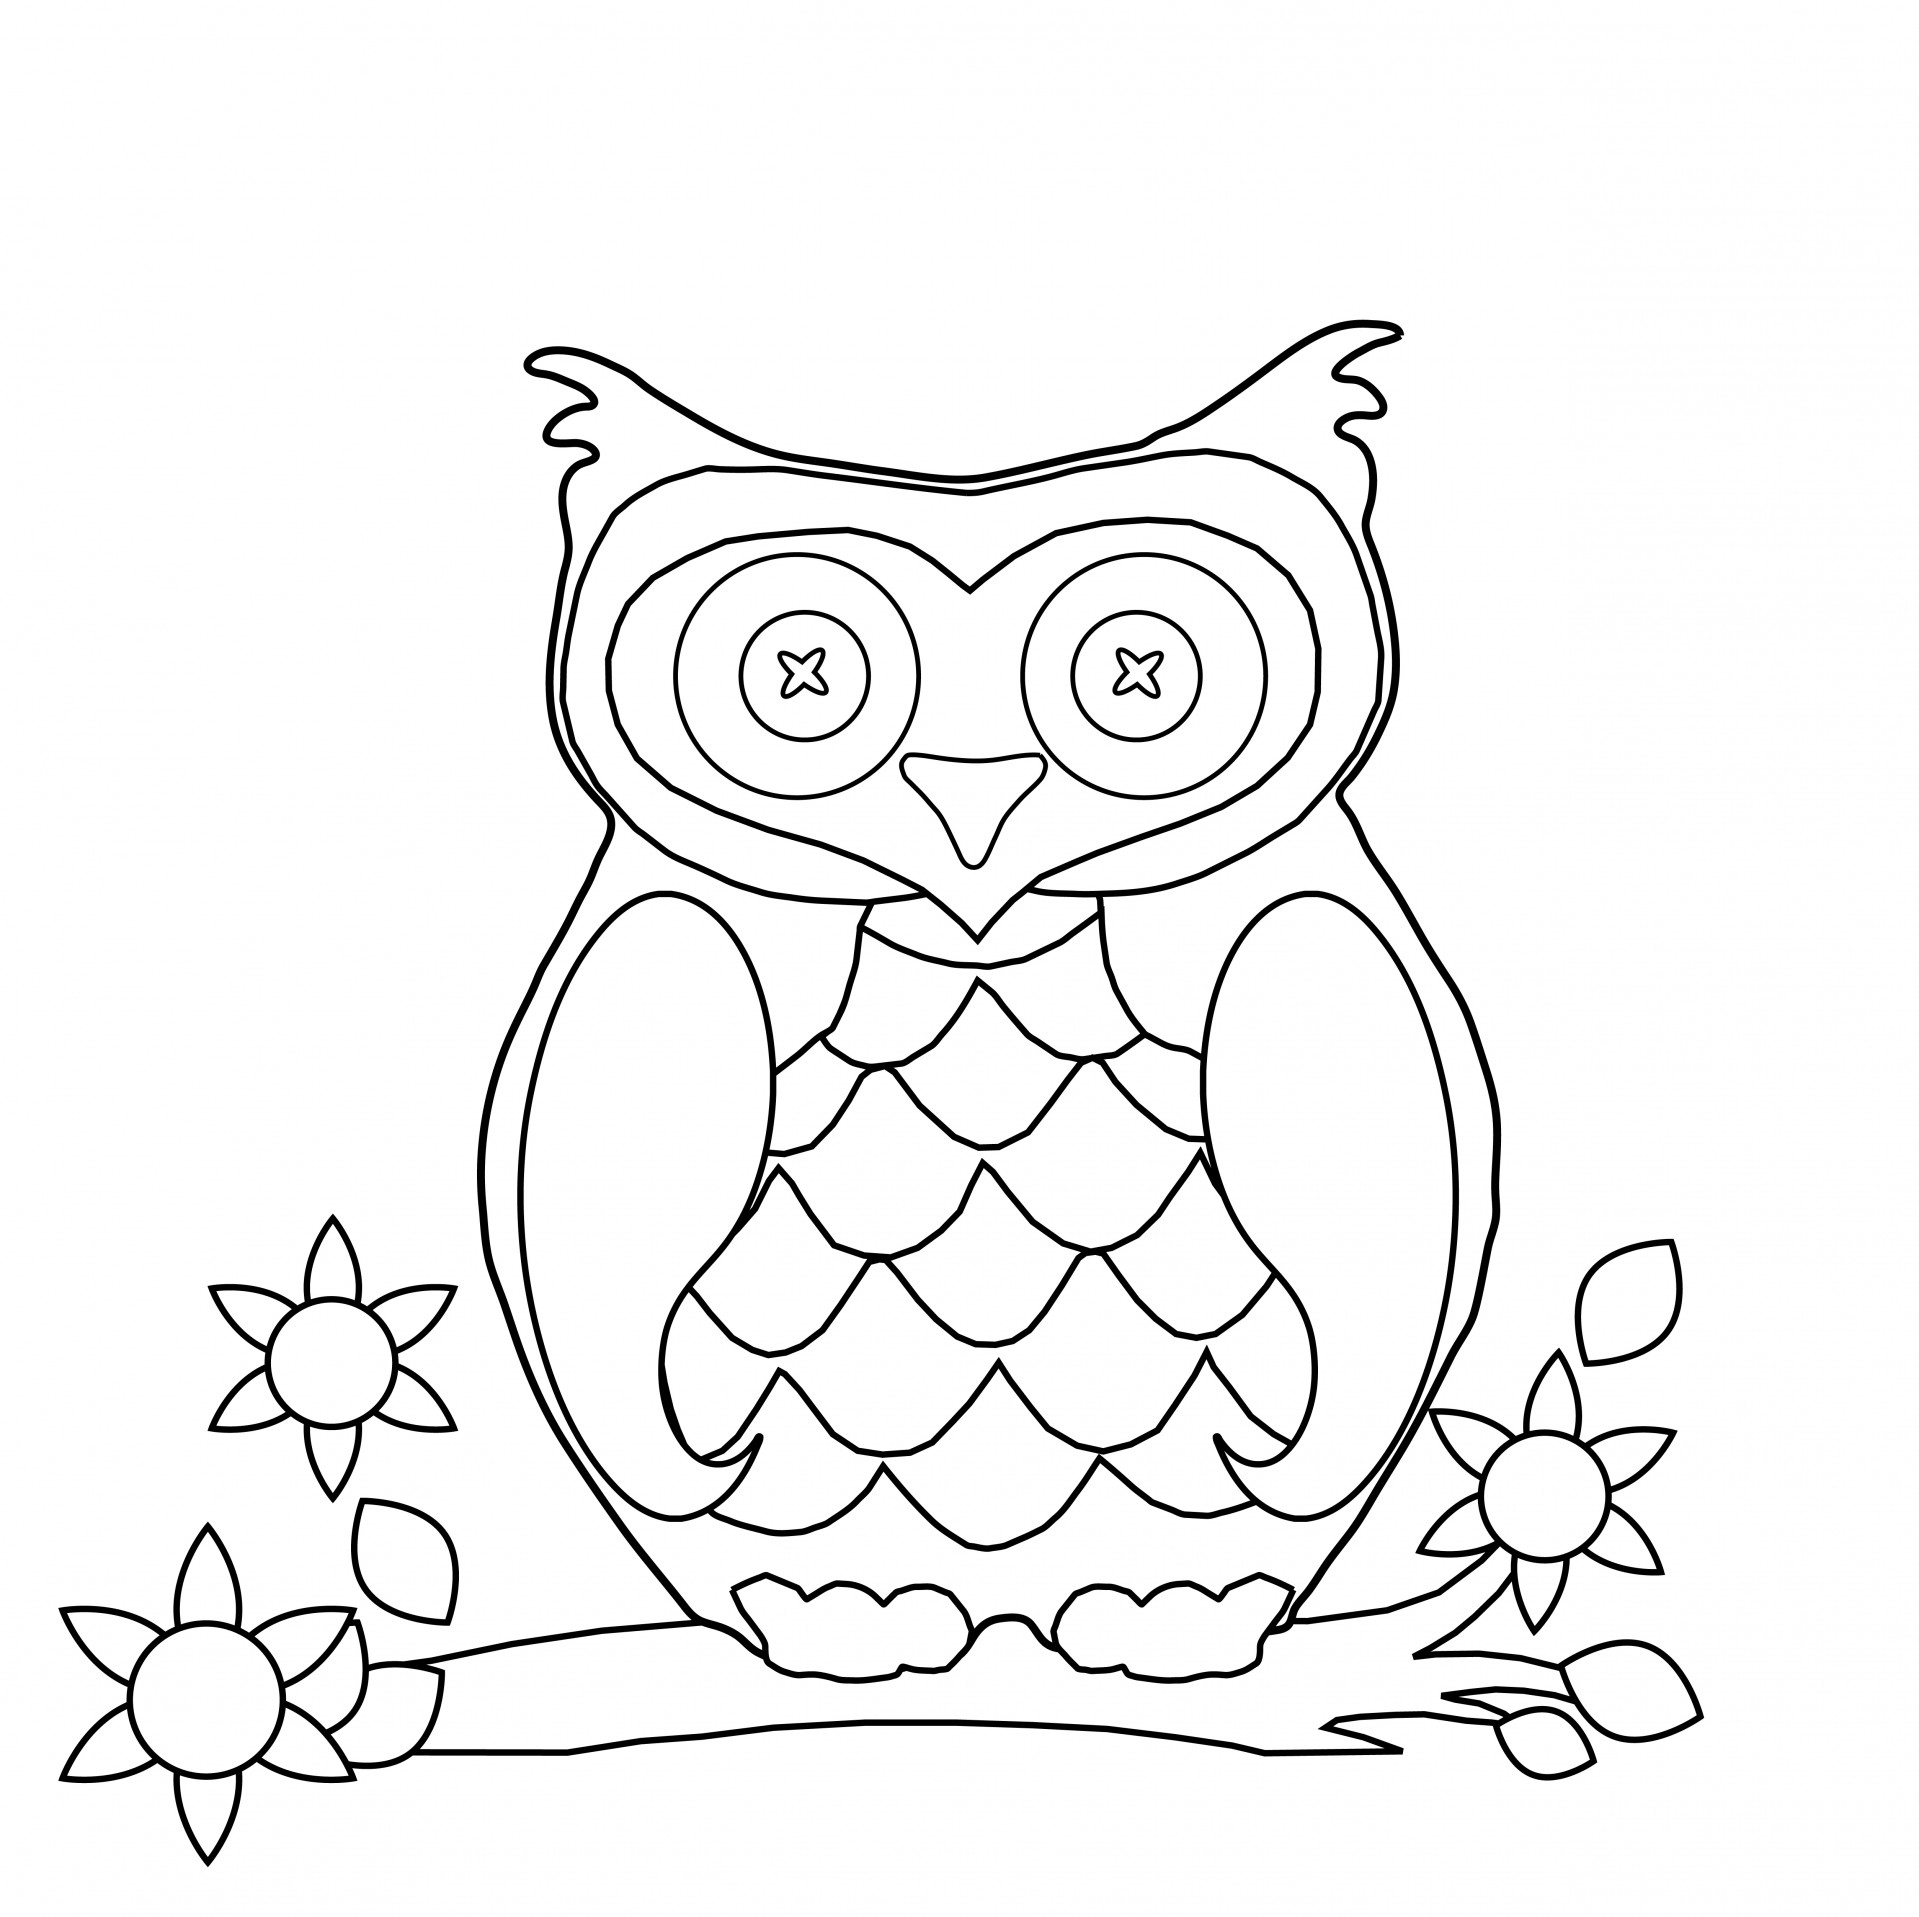 coloring adults pages free adult coloring pages happiness is homemade pages adults coloring